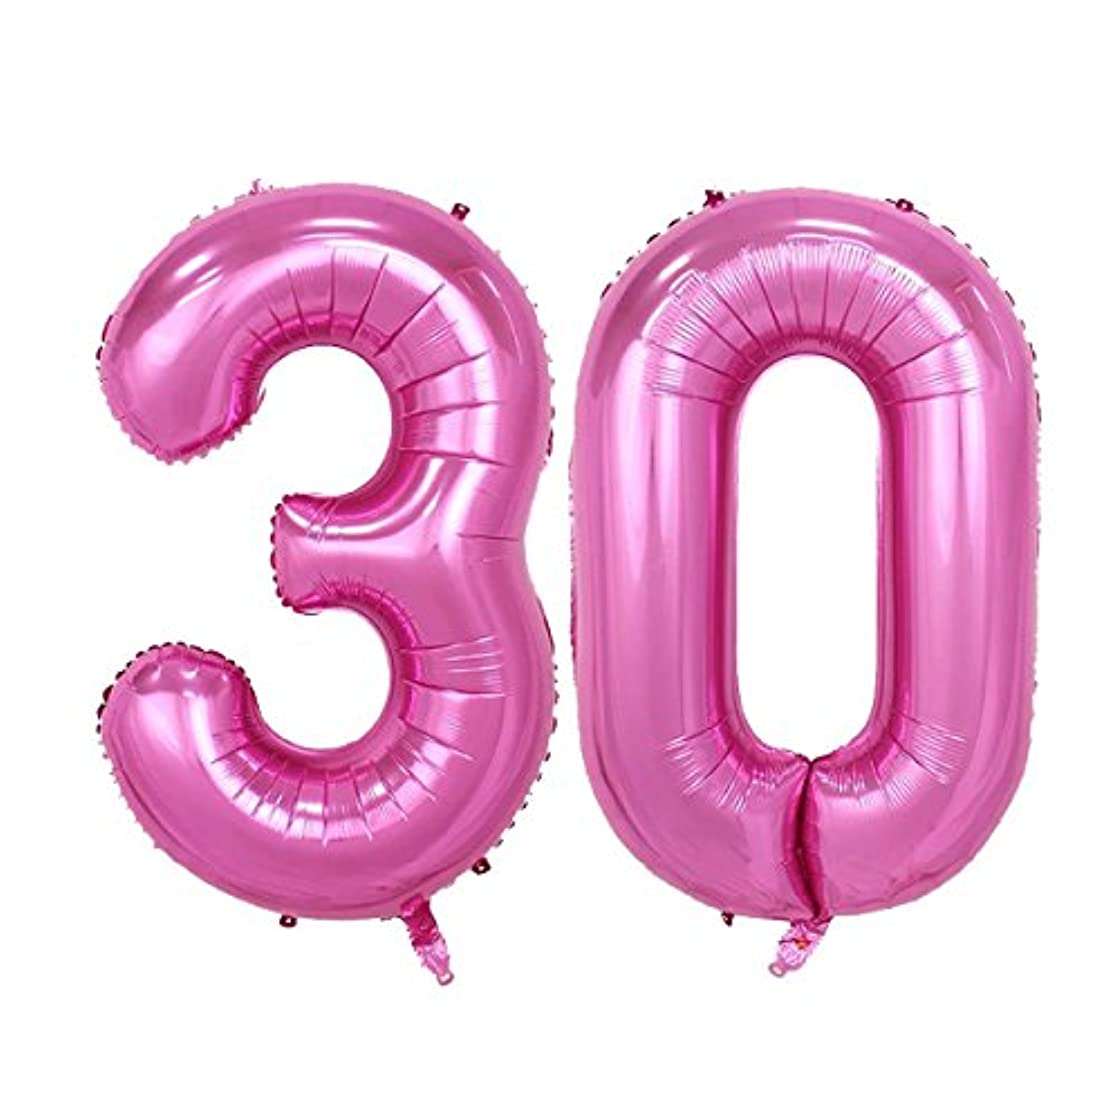 40inch Pink Number 30 Jumbo foil Helium Balloons for Bithday Party Festival Decorations Photo Props (pink 30)